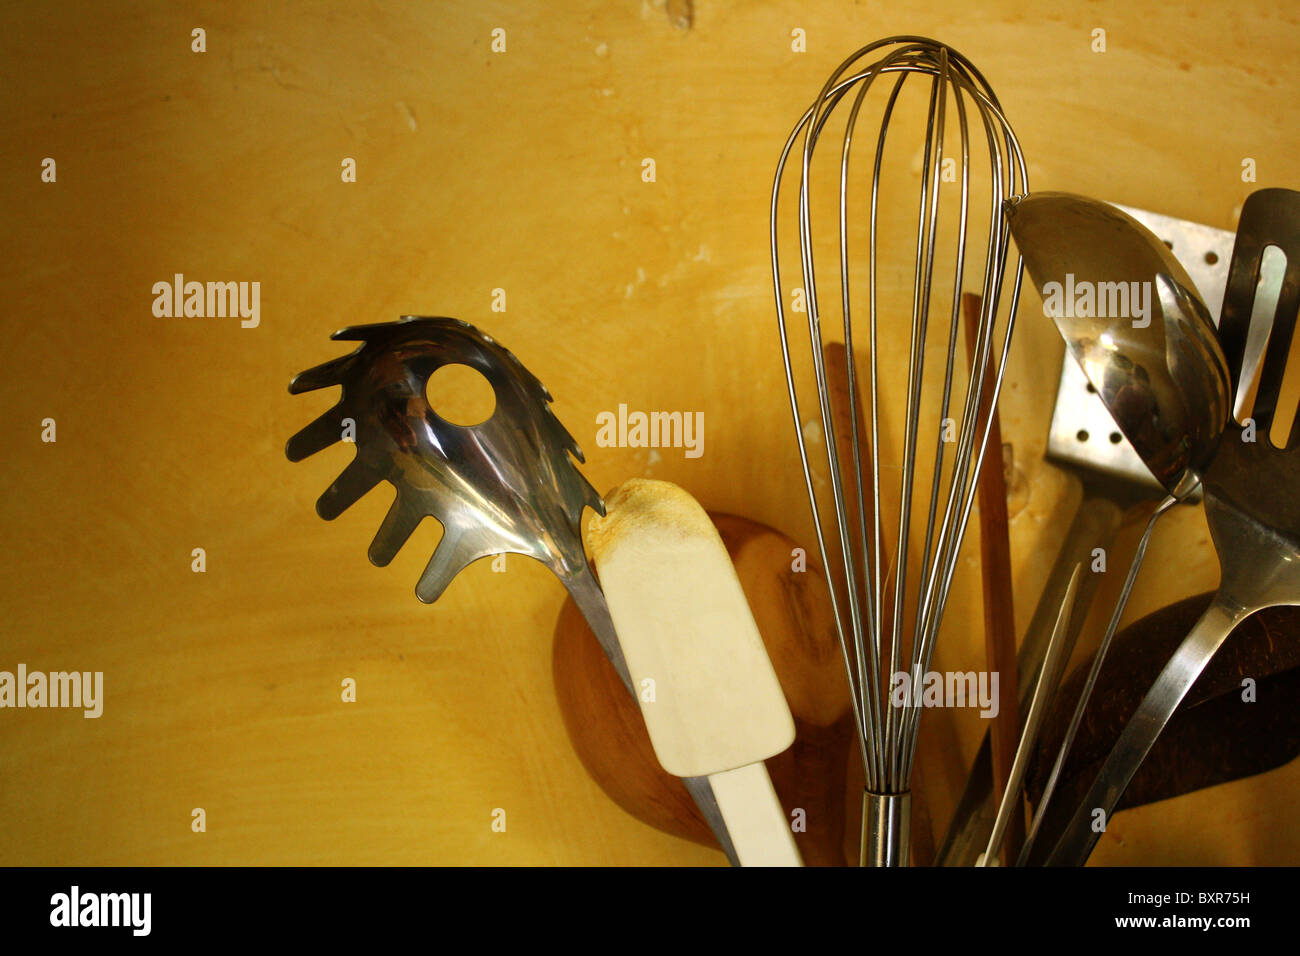 A Group Of Kitchen Utensils In A Pot Against A Yellow Kitchen Wall Stock Photo Alamy